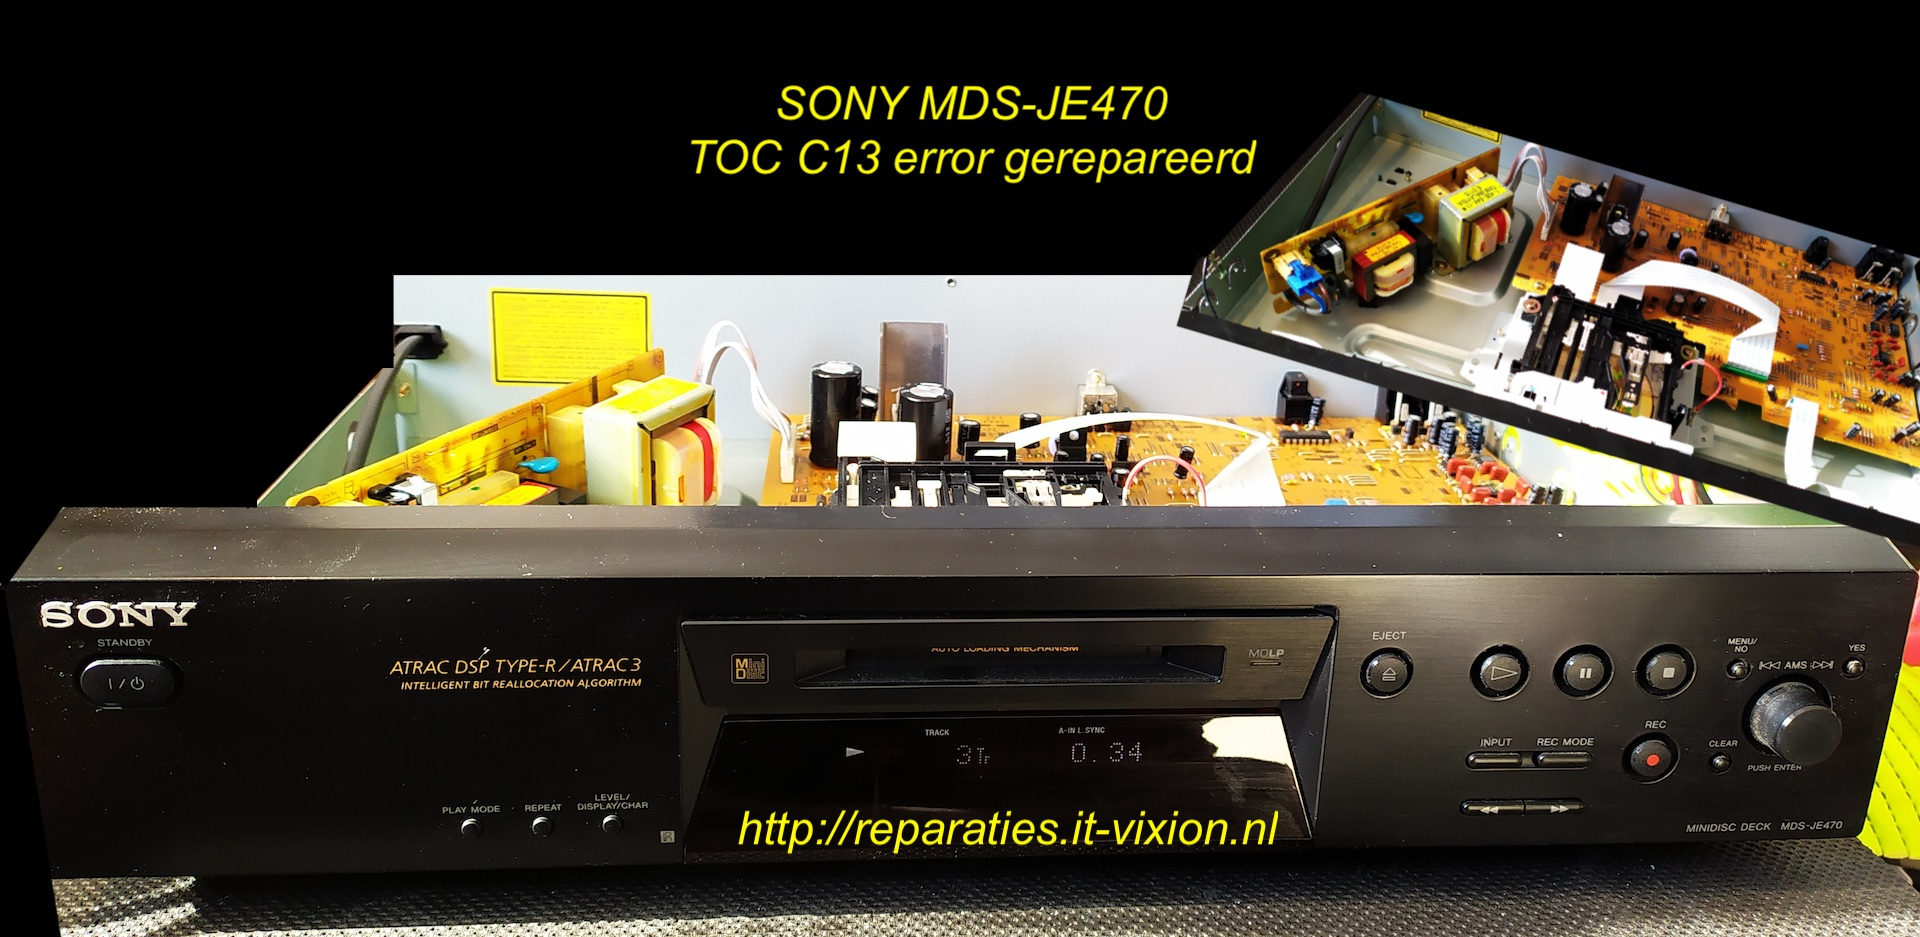 Sony mds-je470 C13 error